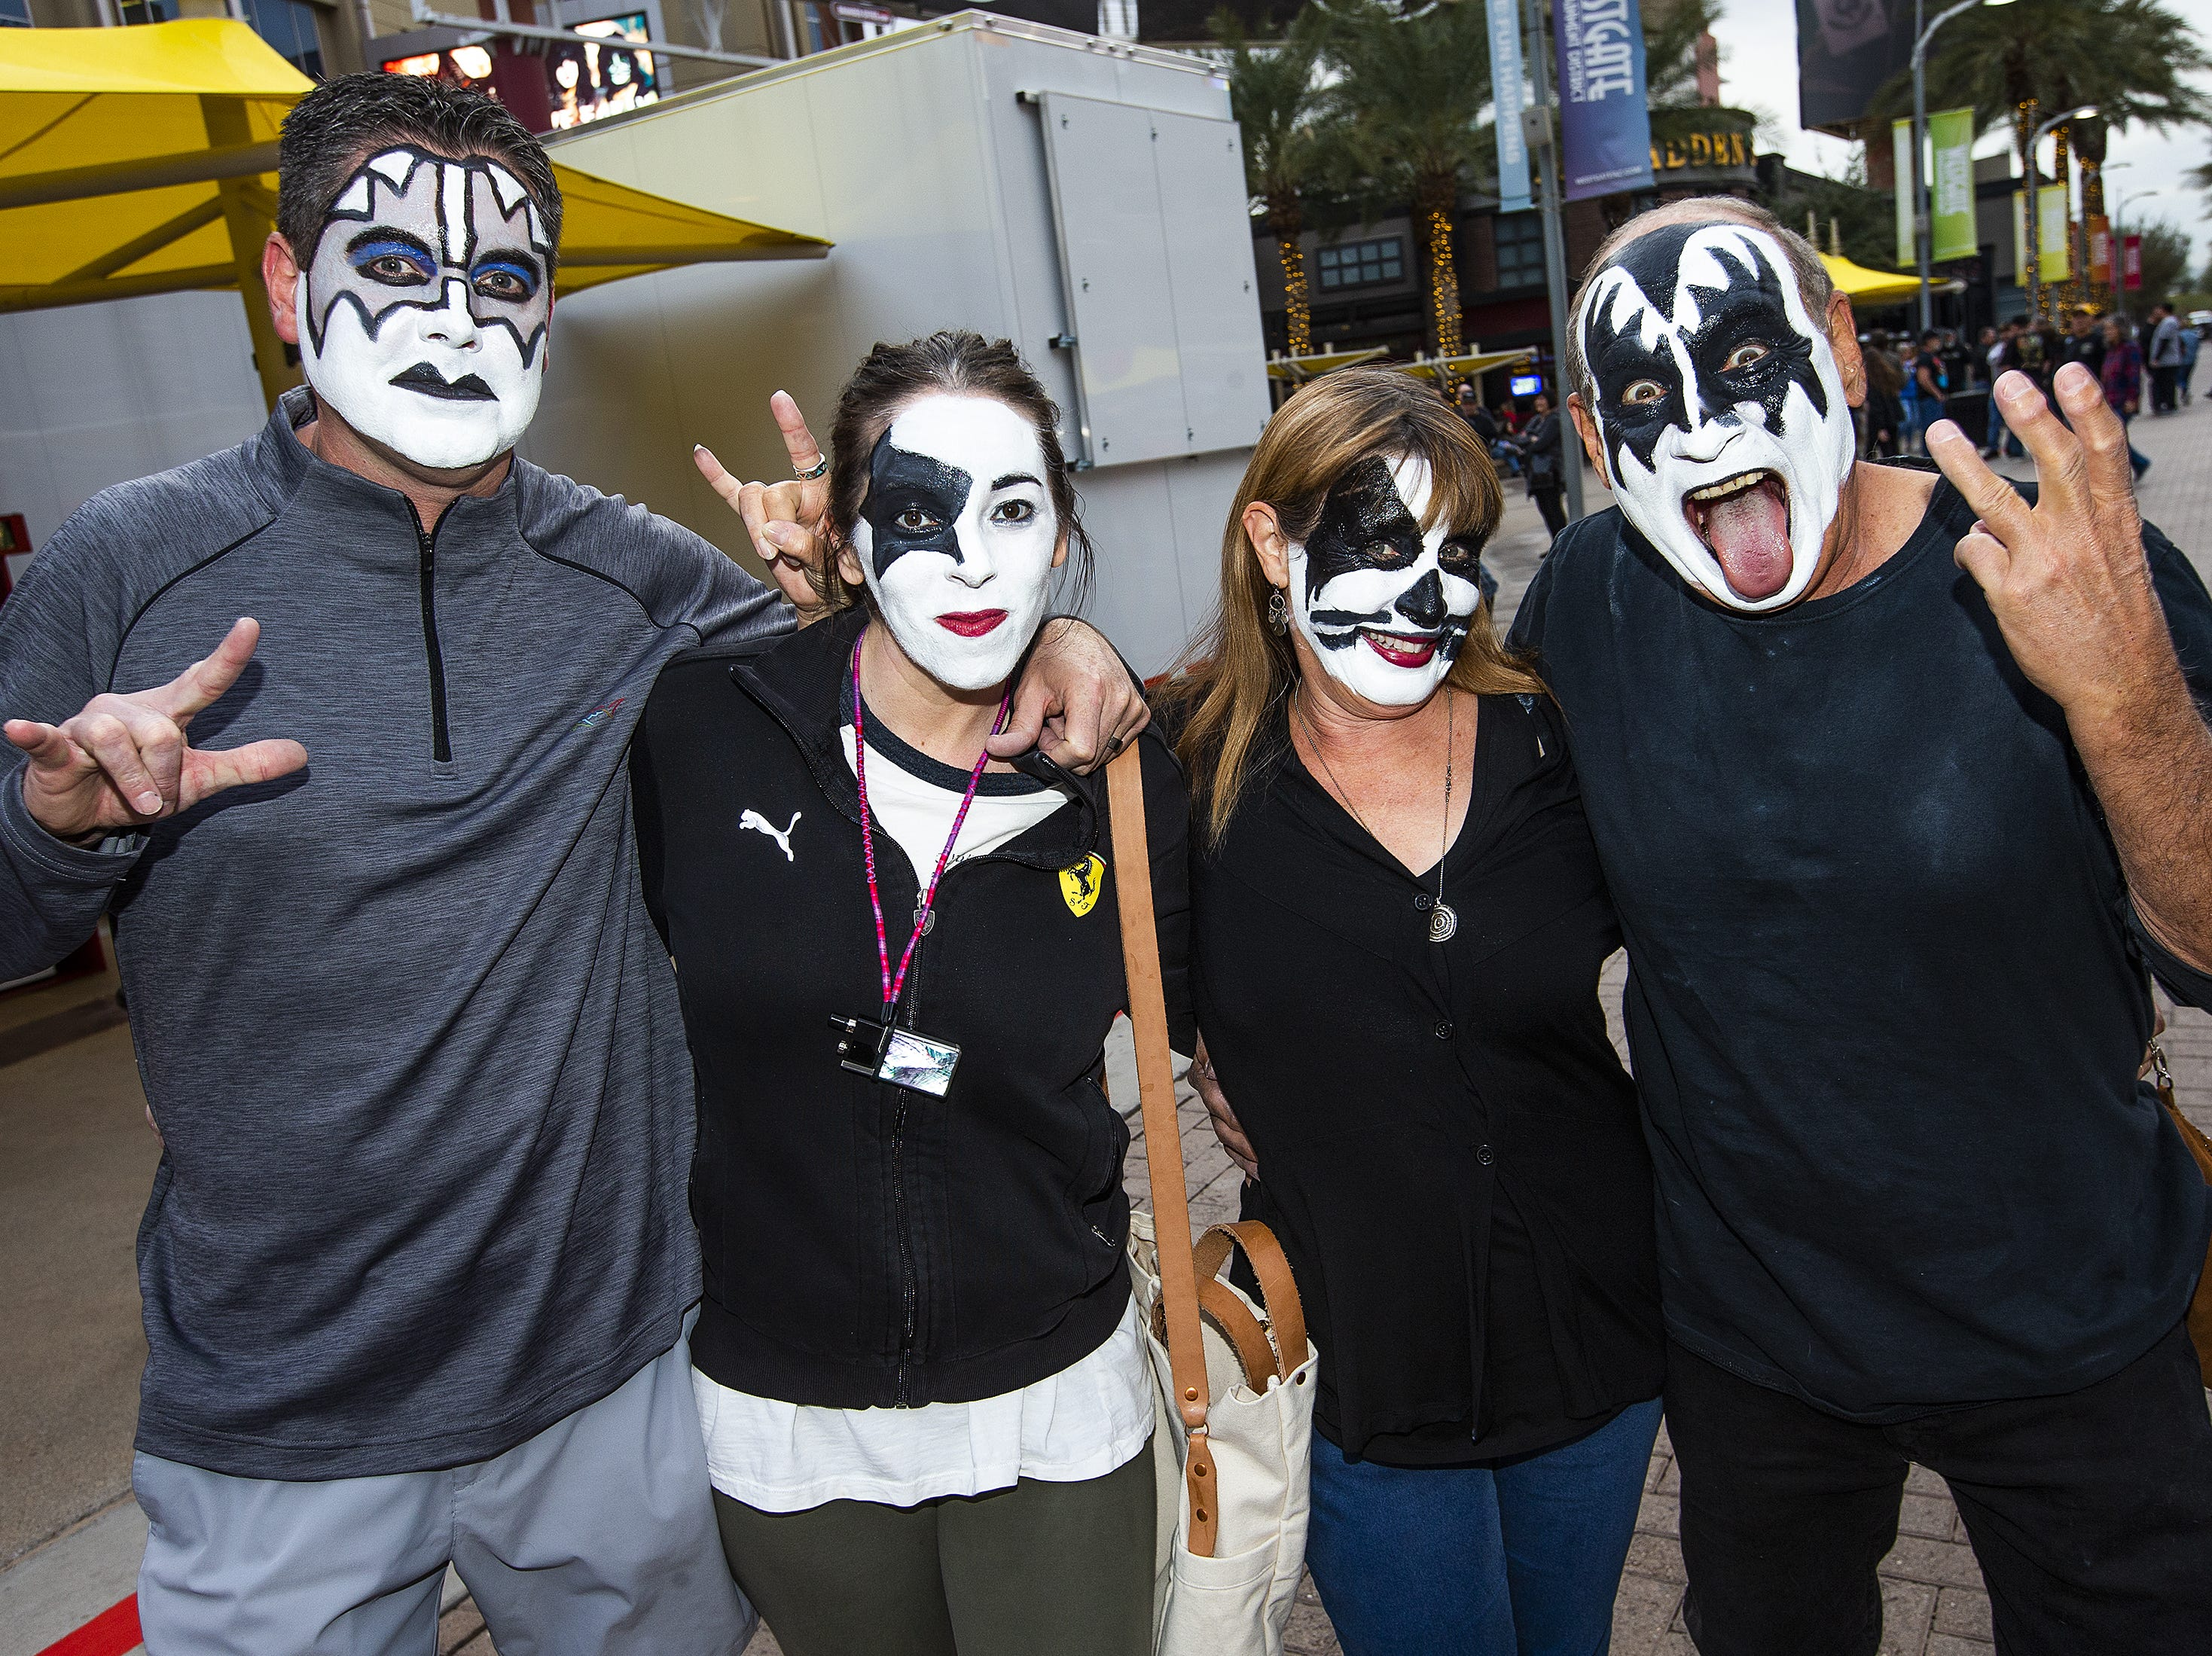 Couples Russ Clark, 47, and Sara Clark, 38, with Judy Morrow, 66, and Dave Lodiko, 70, show off their best KISS makeup prior to the concert by the famed group at Gila River Arena in Glendale on Wednesday, Feb. 13, 2019.  The concert was part of the End of the Road World Tour, the band's farewell to the fans.